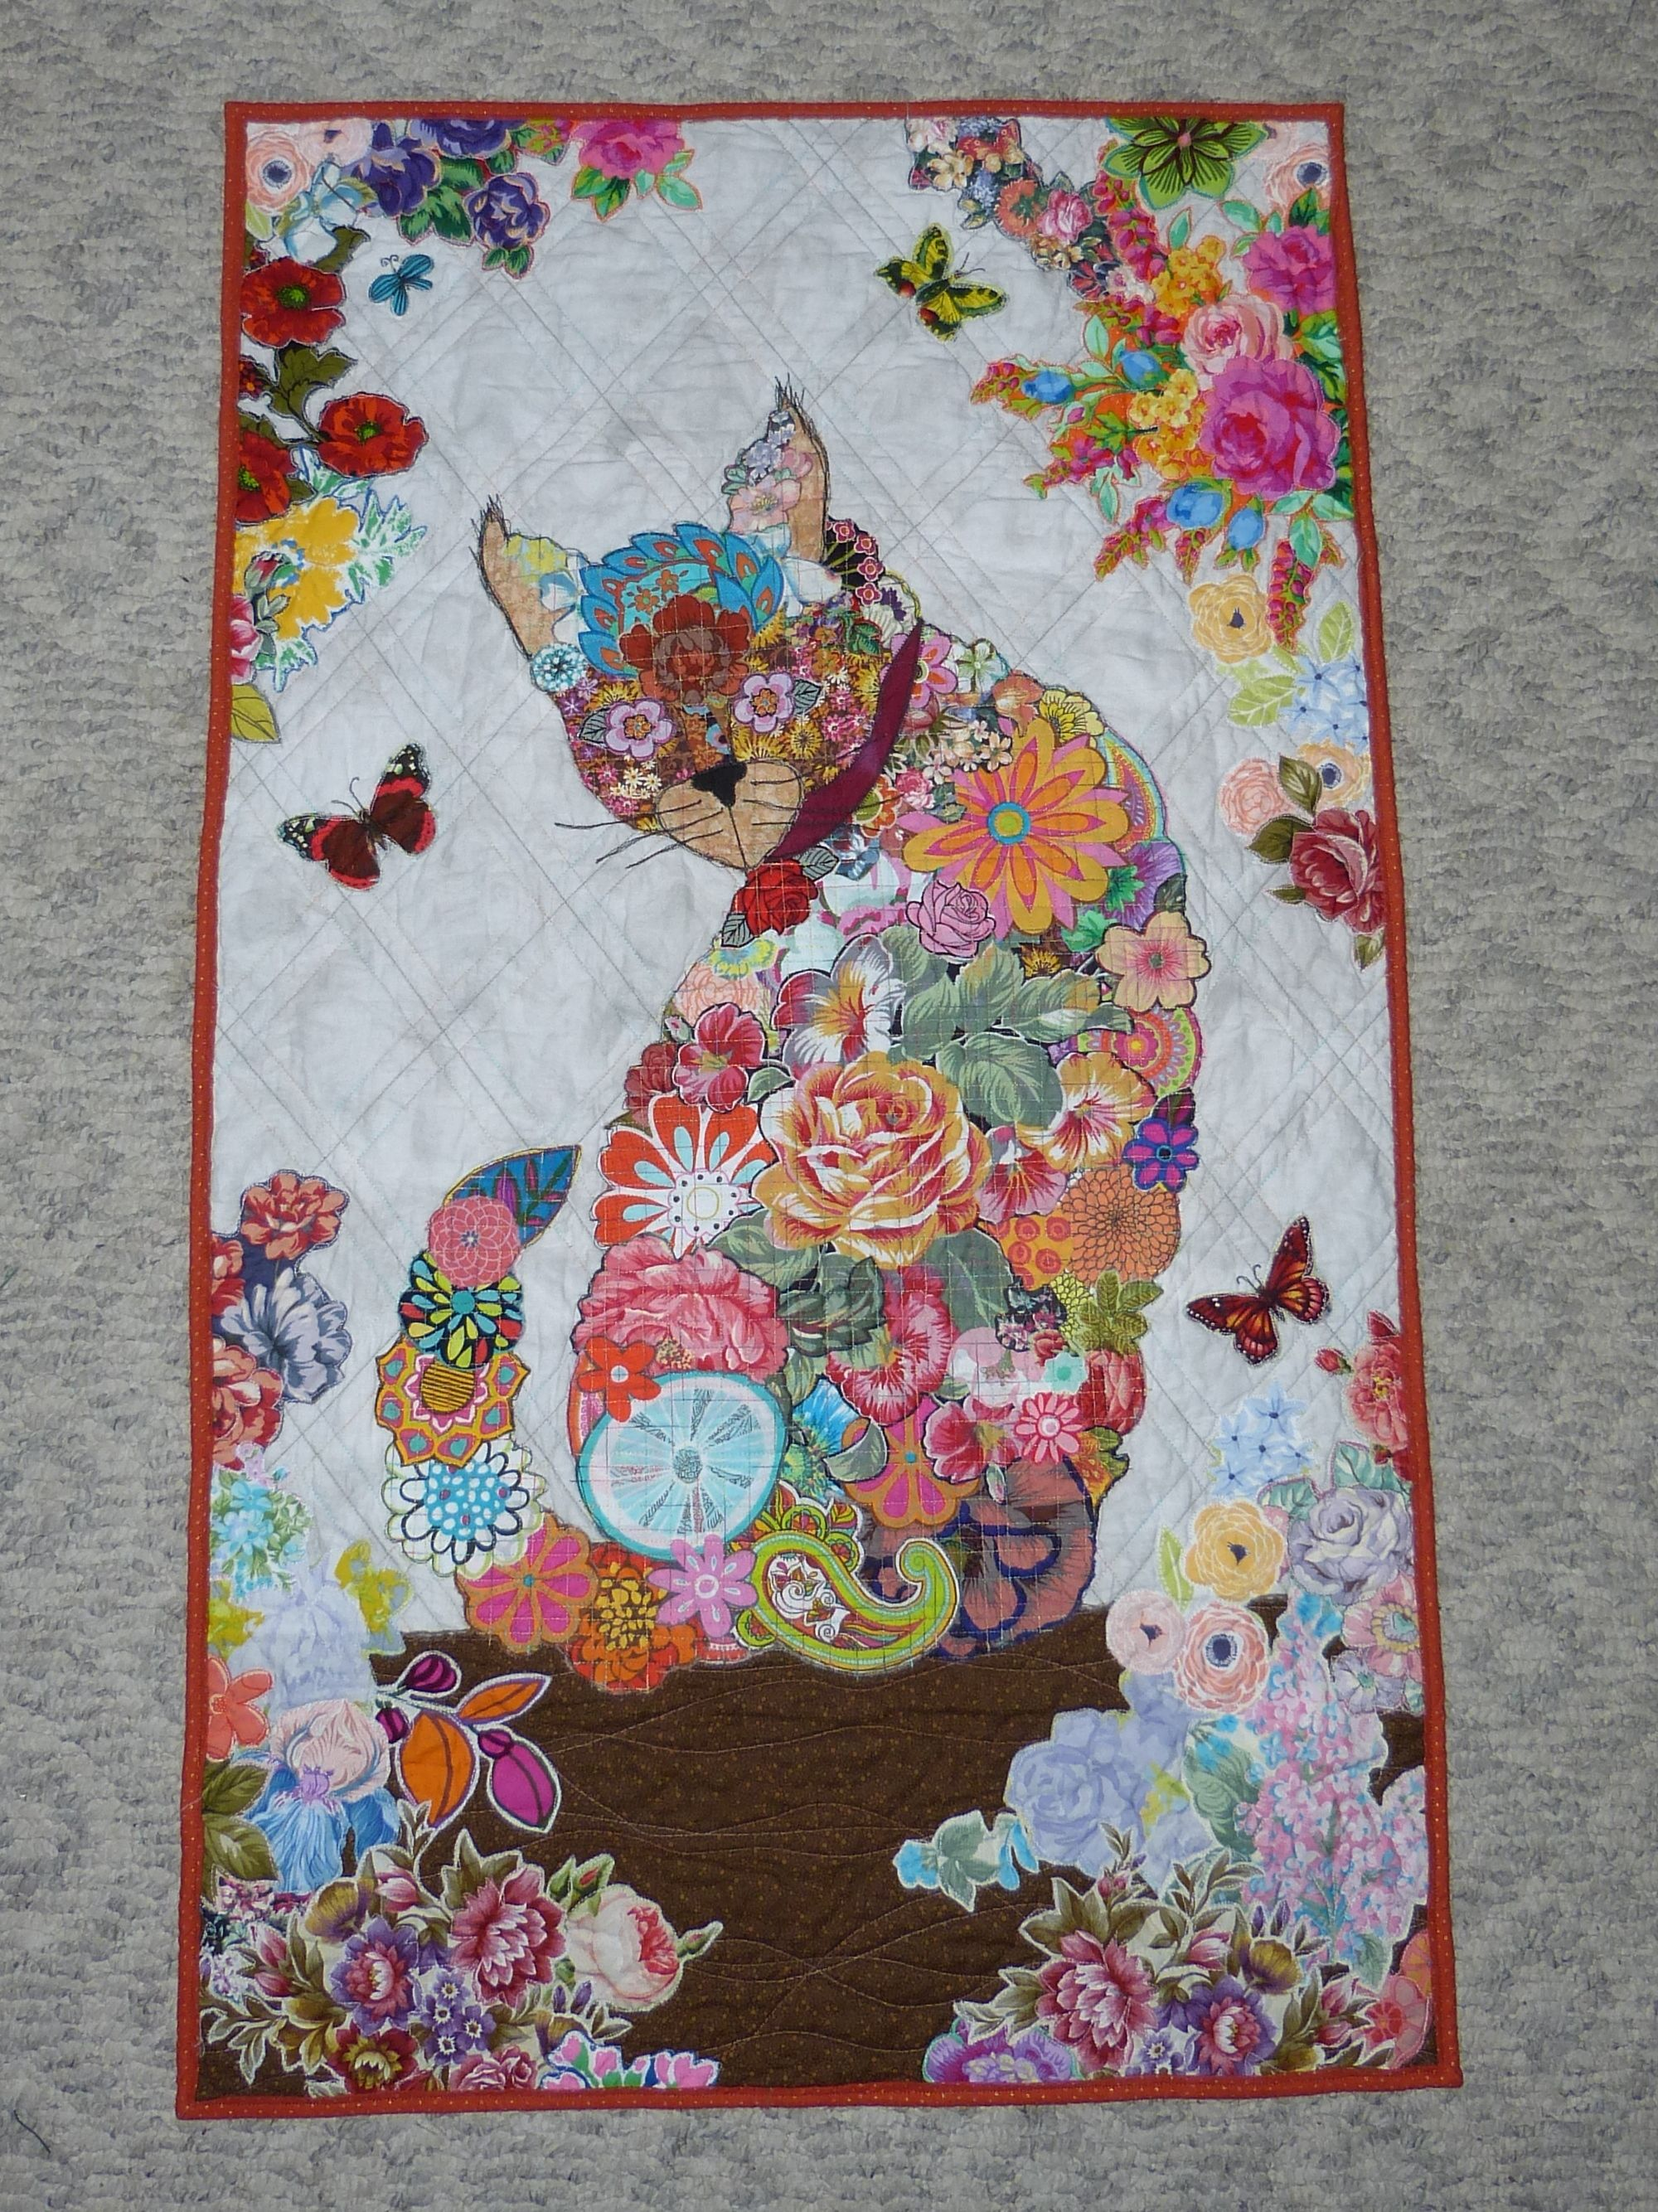 Purrfect Cat Collage Wall Hanging Quilt Pattern by Fiberworks